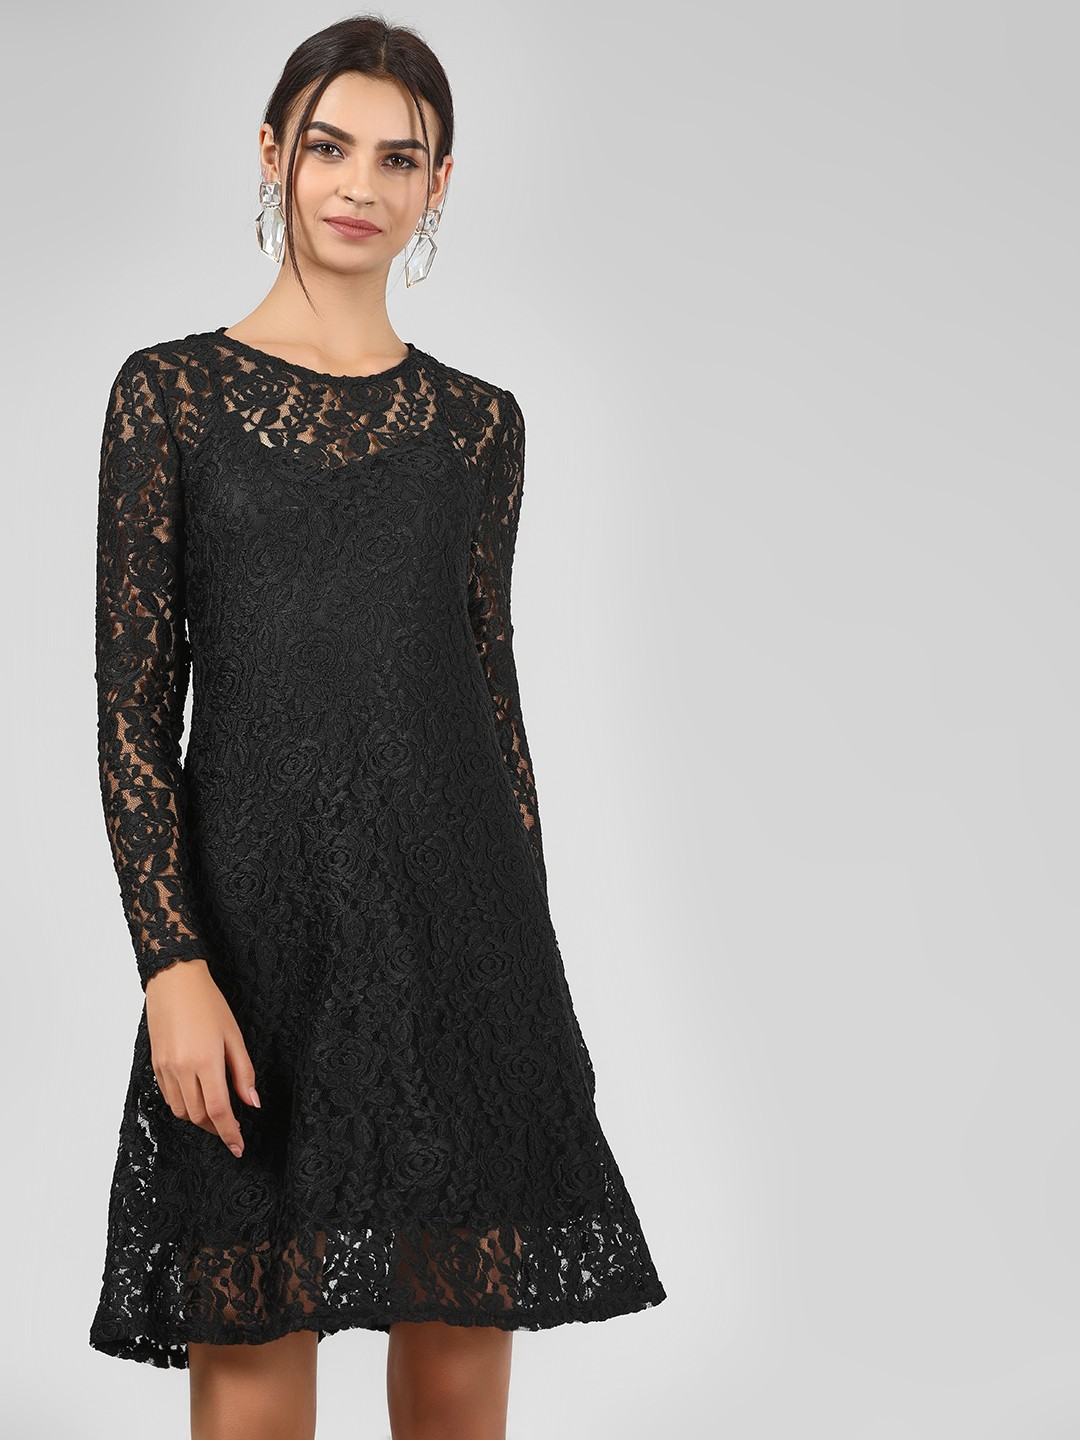 Vero Moda Black Floral Lace Skater Dress 1